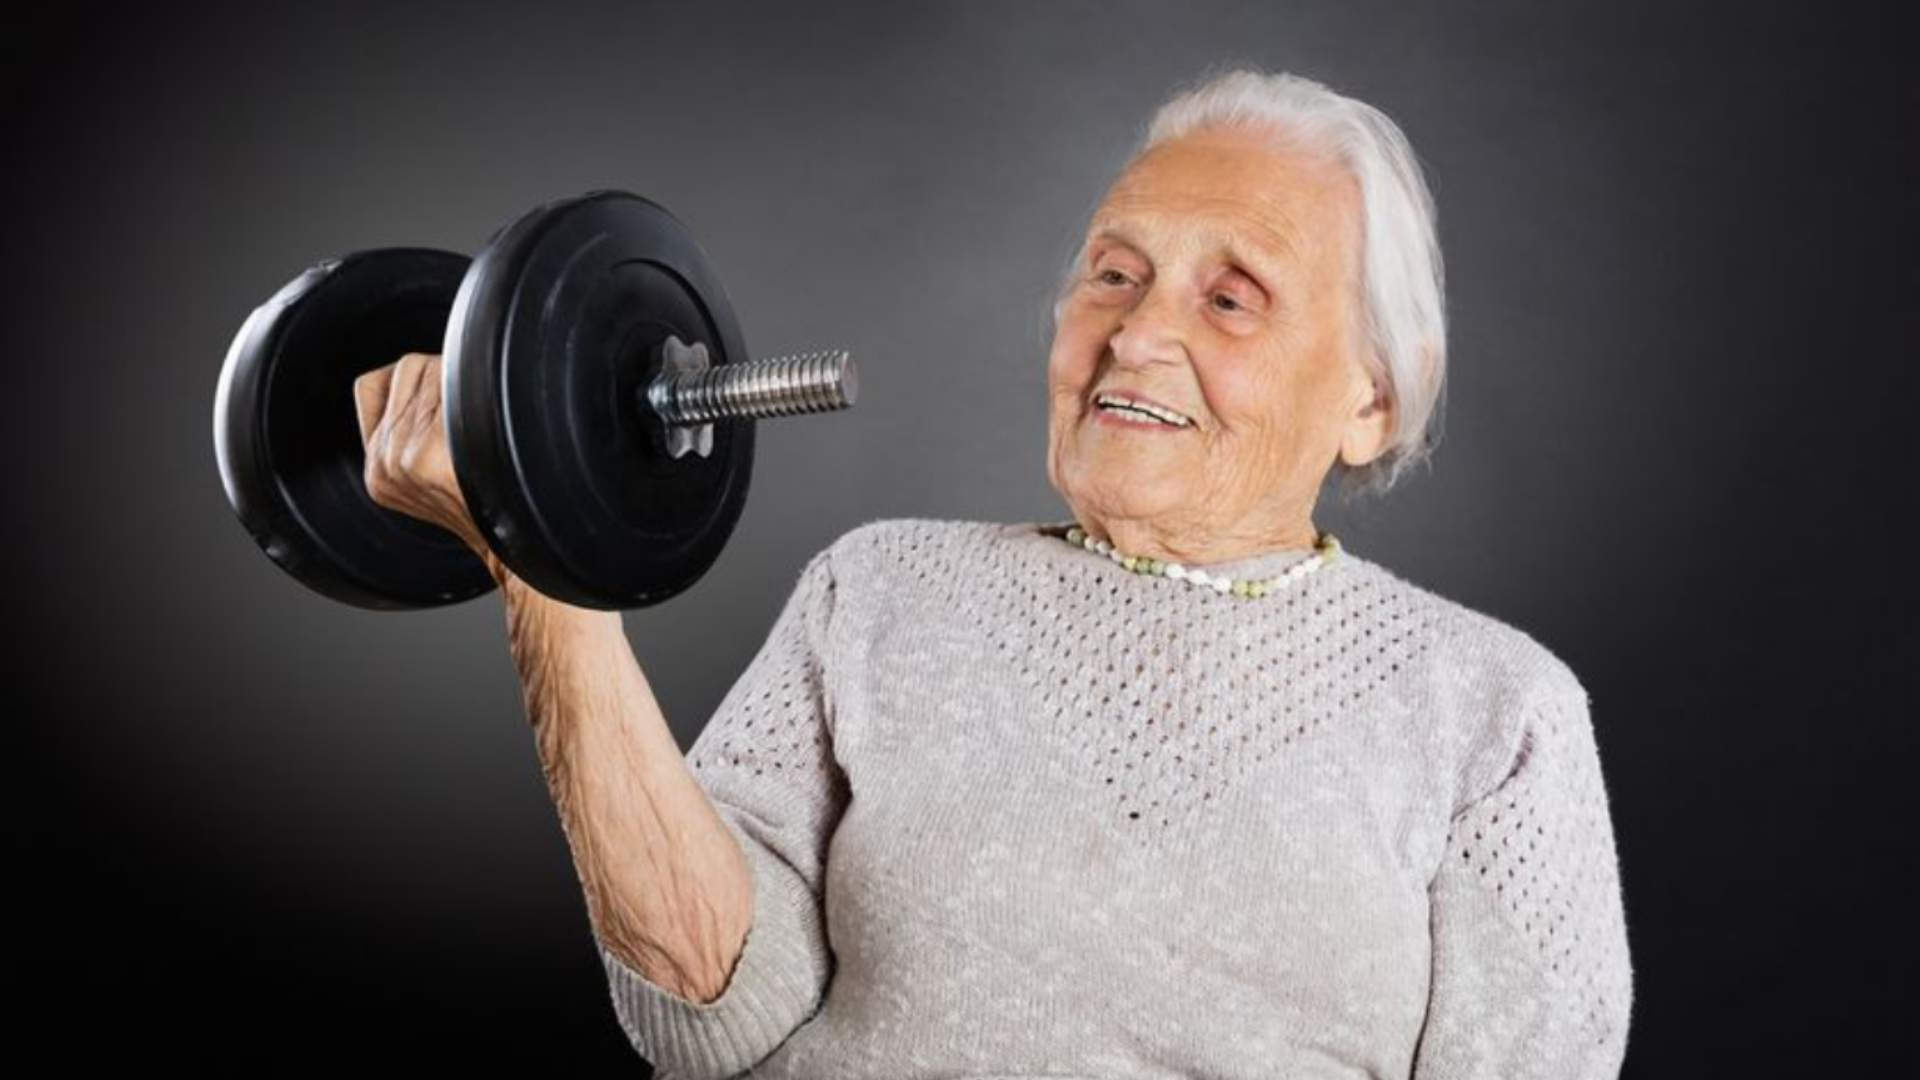 Building Muscles Strengthens Nervous System Too